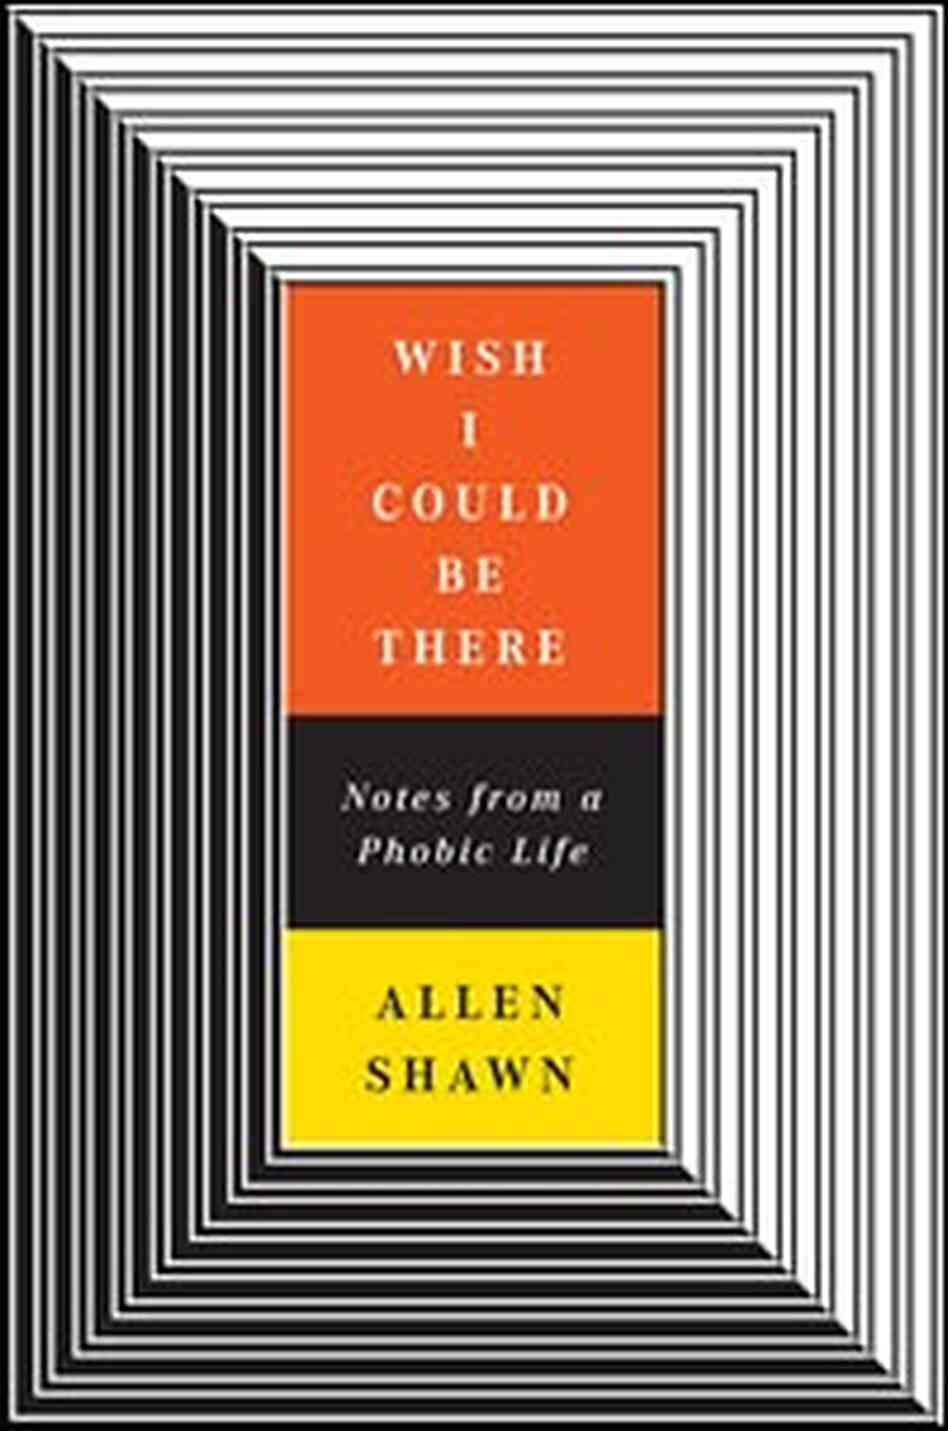 'Wish I Could Be There' by Allen Shawn